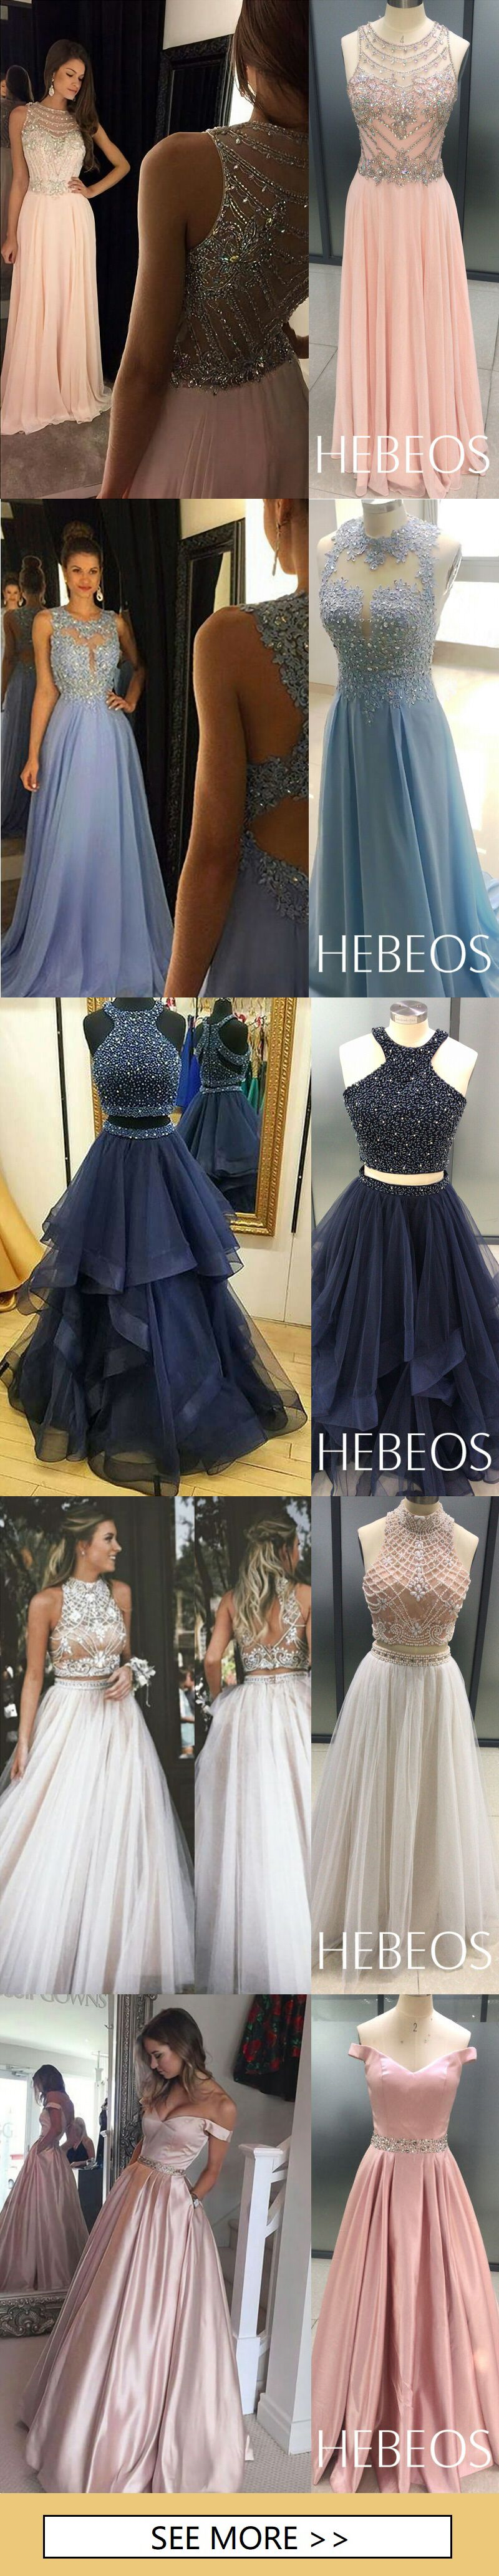 HEBEOS Prom Dresses 10 Hot Collection On Sale! Those real photos